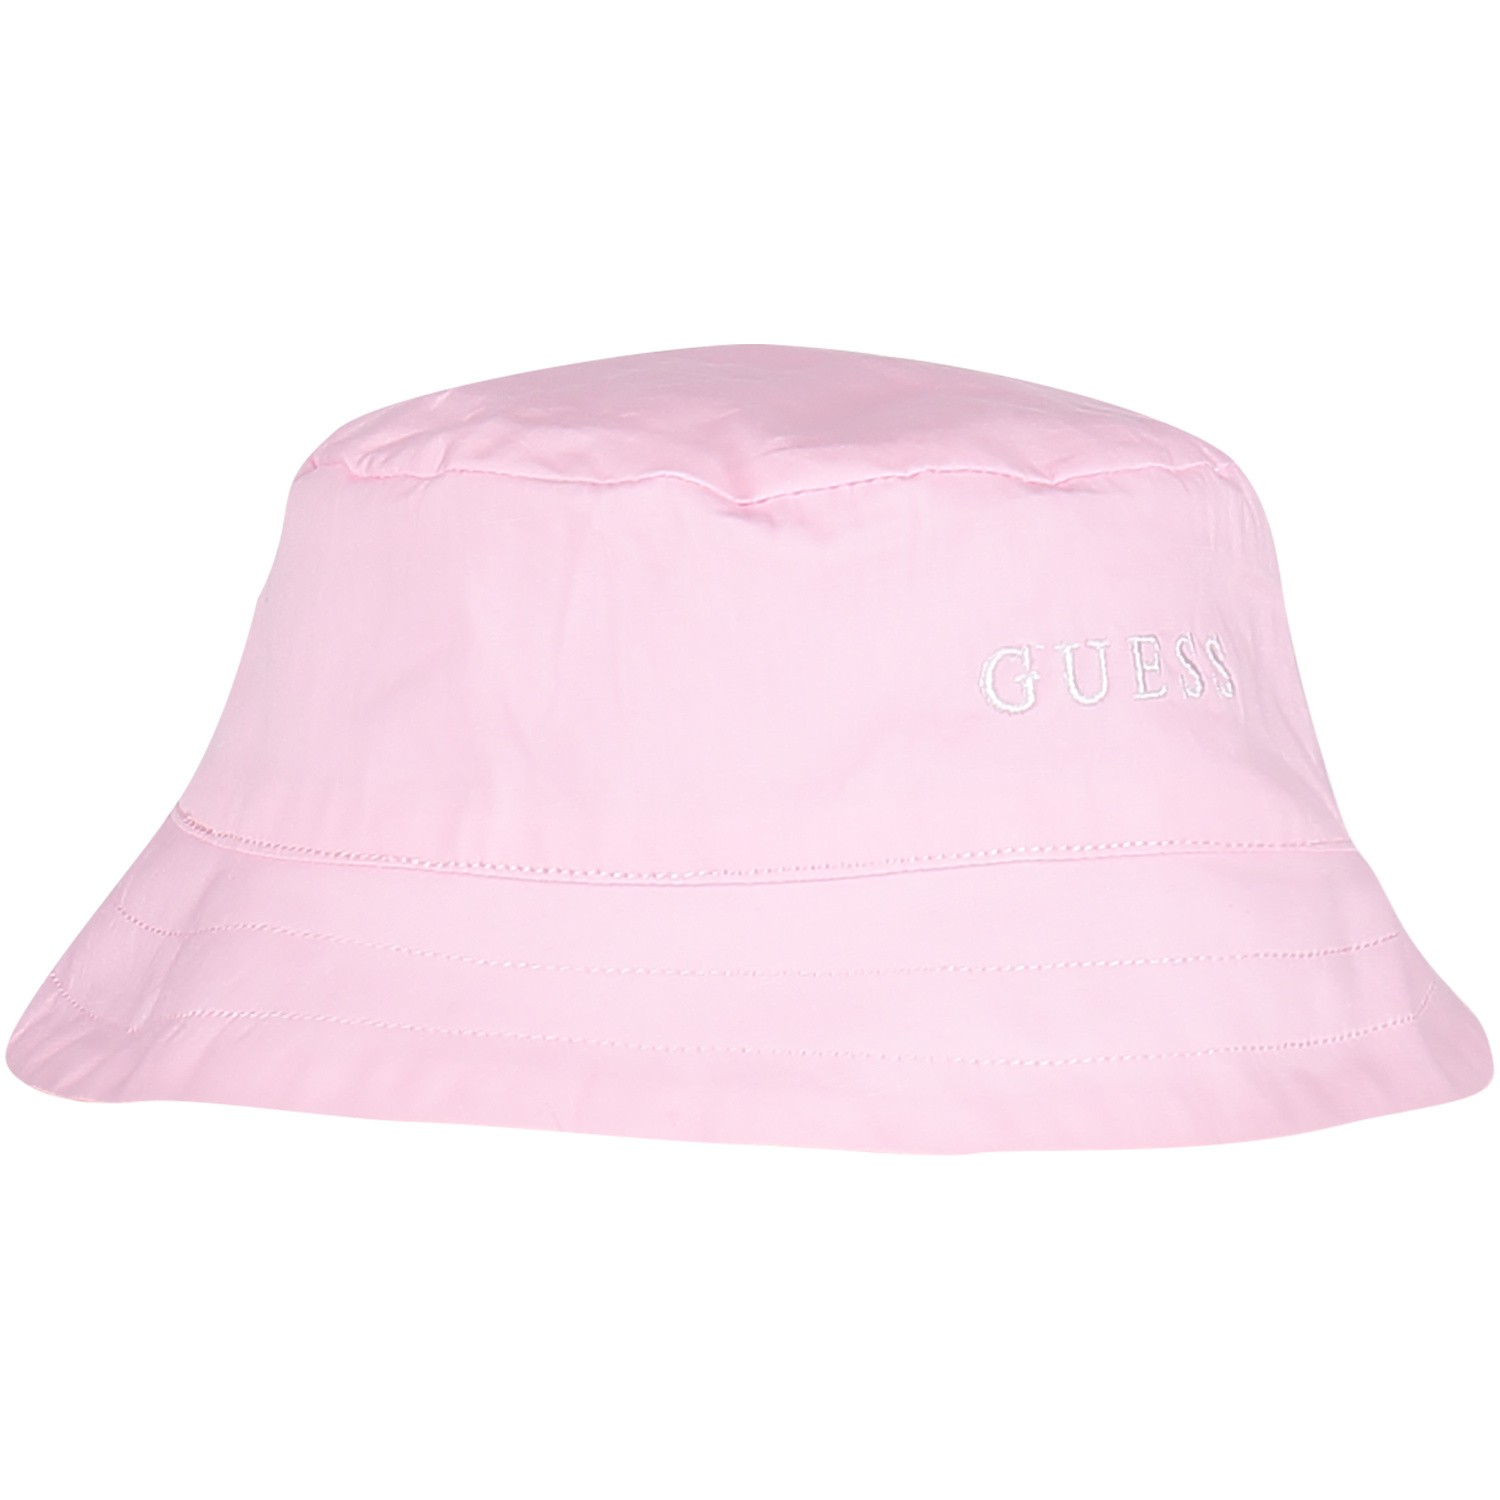 Picture of Guess S92G22 baby hat light pink